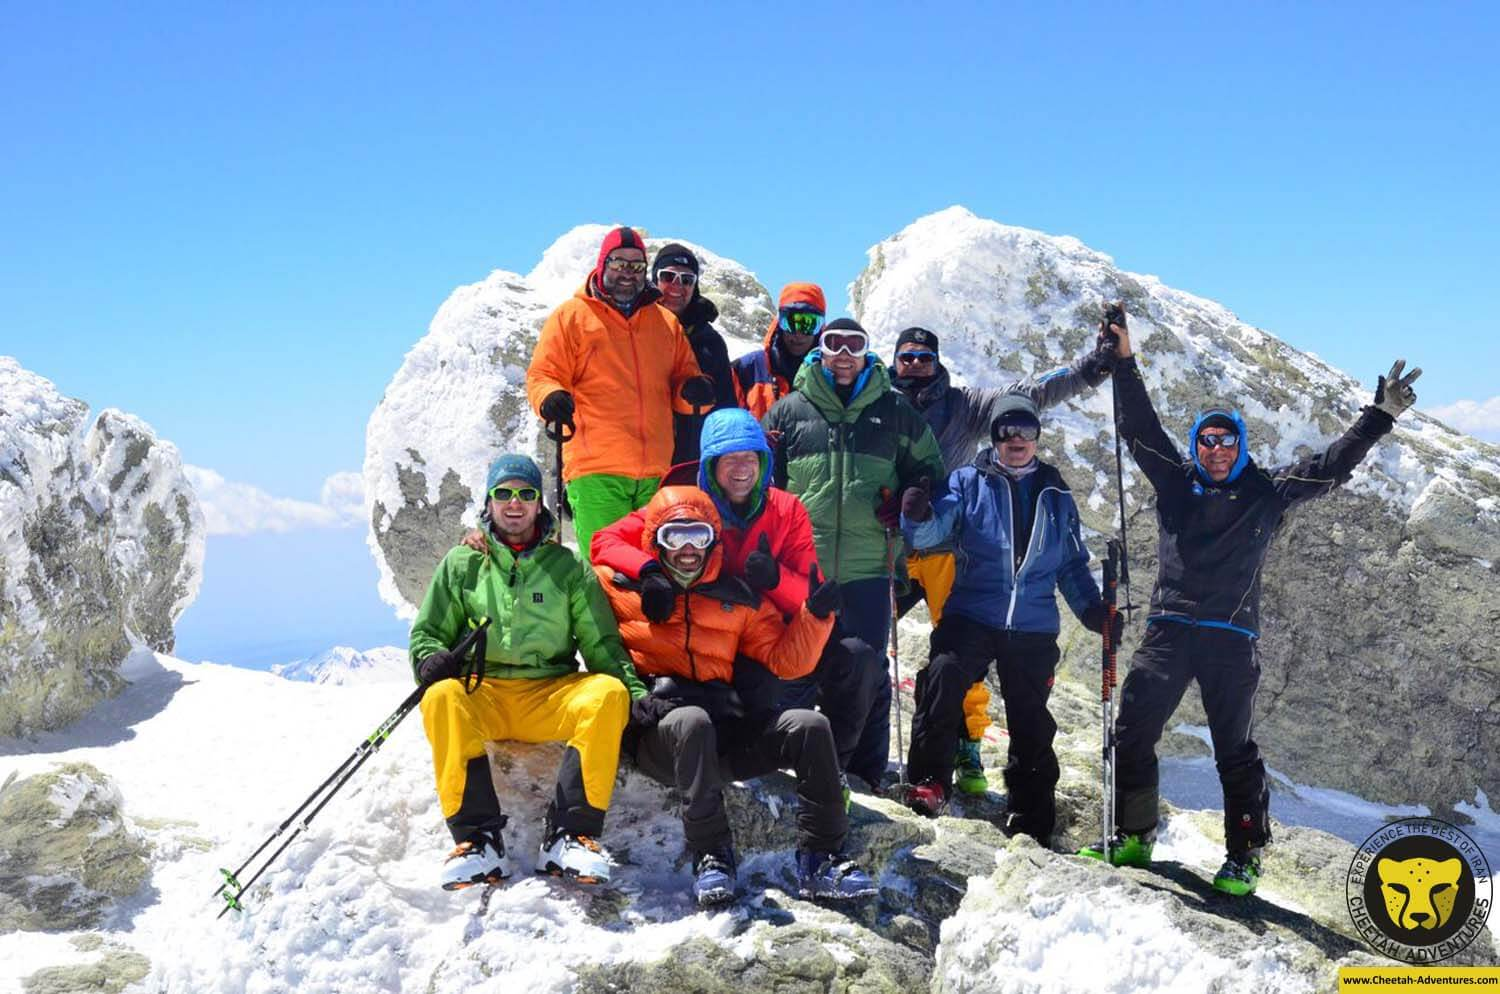 6-6 Damavand Summit (5610m) with a multinational group form Germany, Switzerland and Austria, Damavand Ski Touring